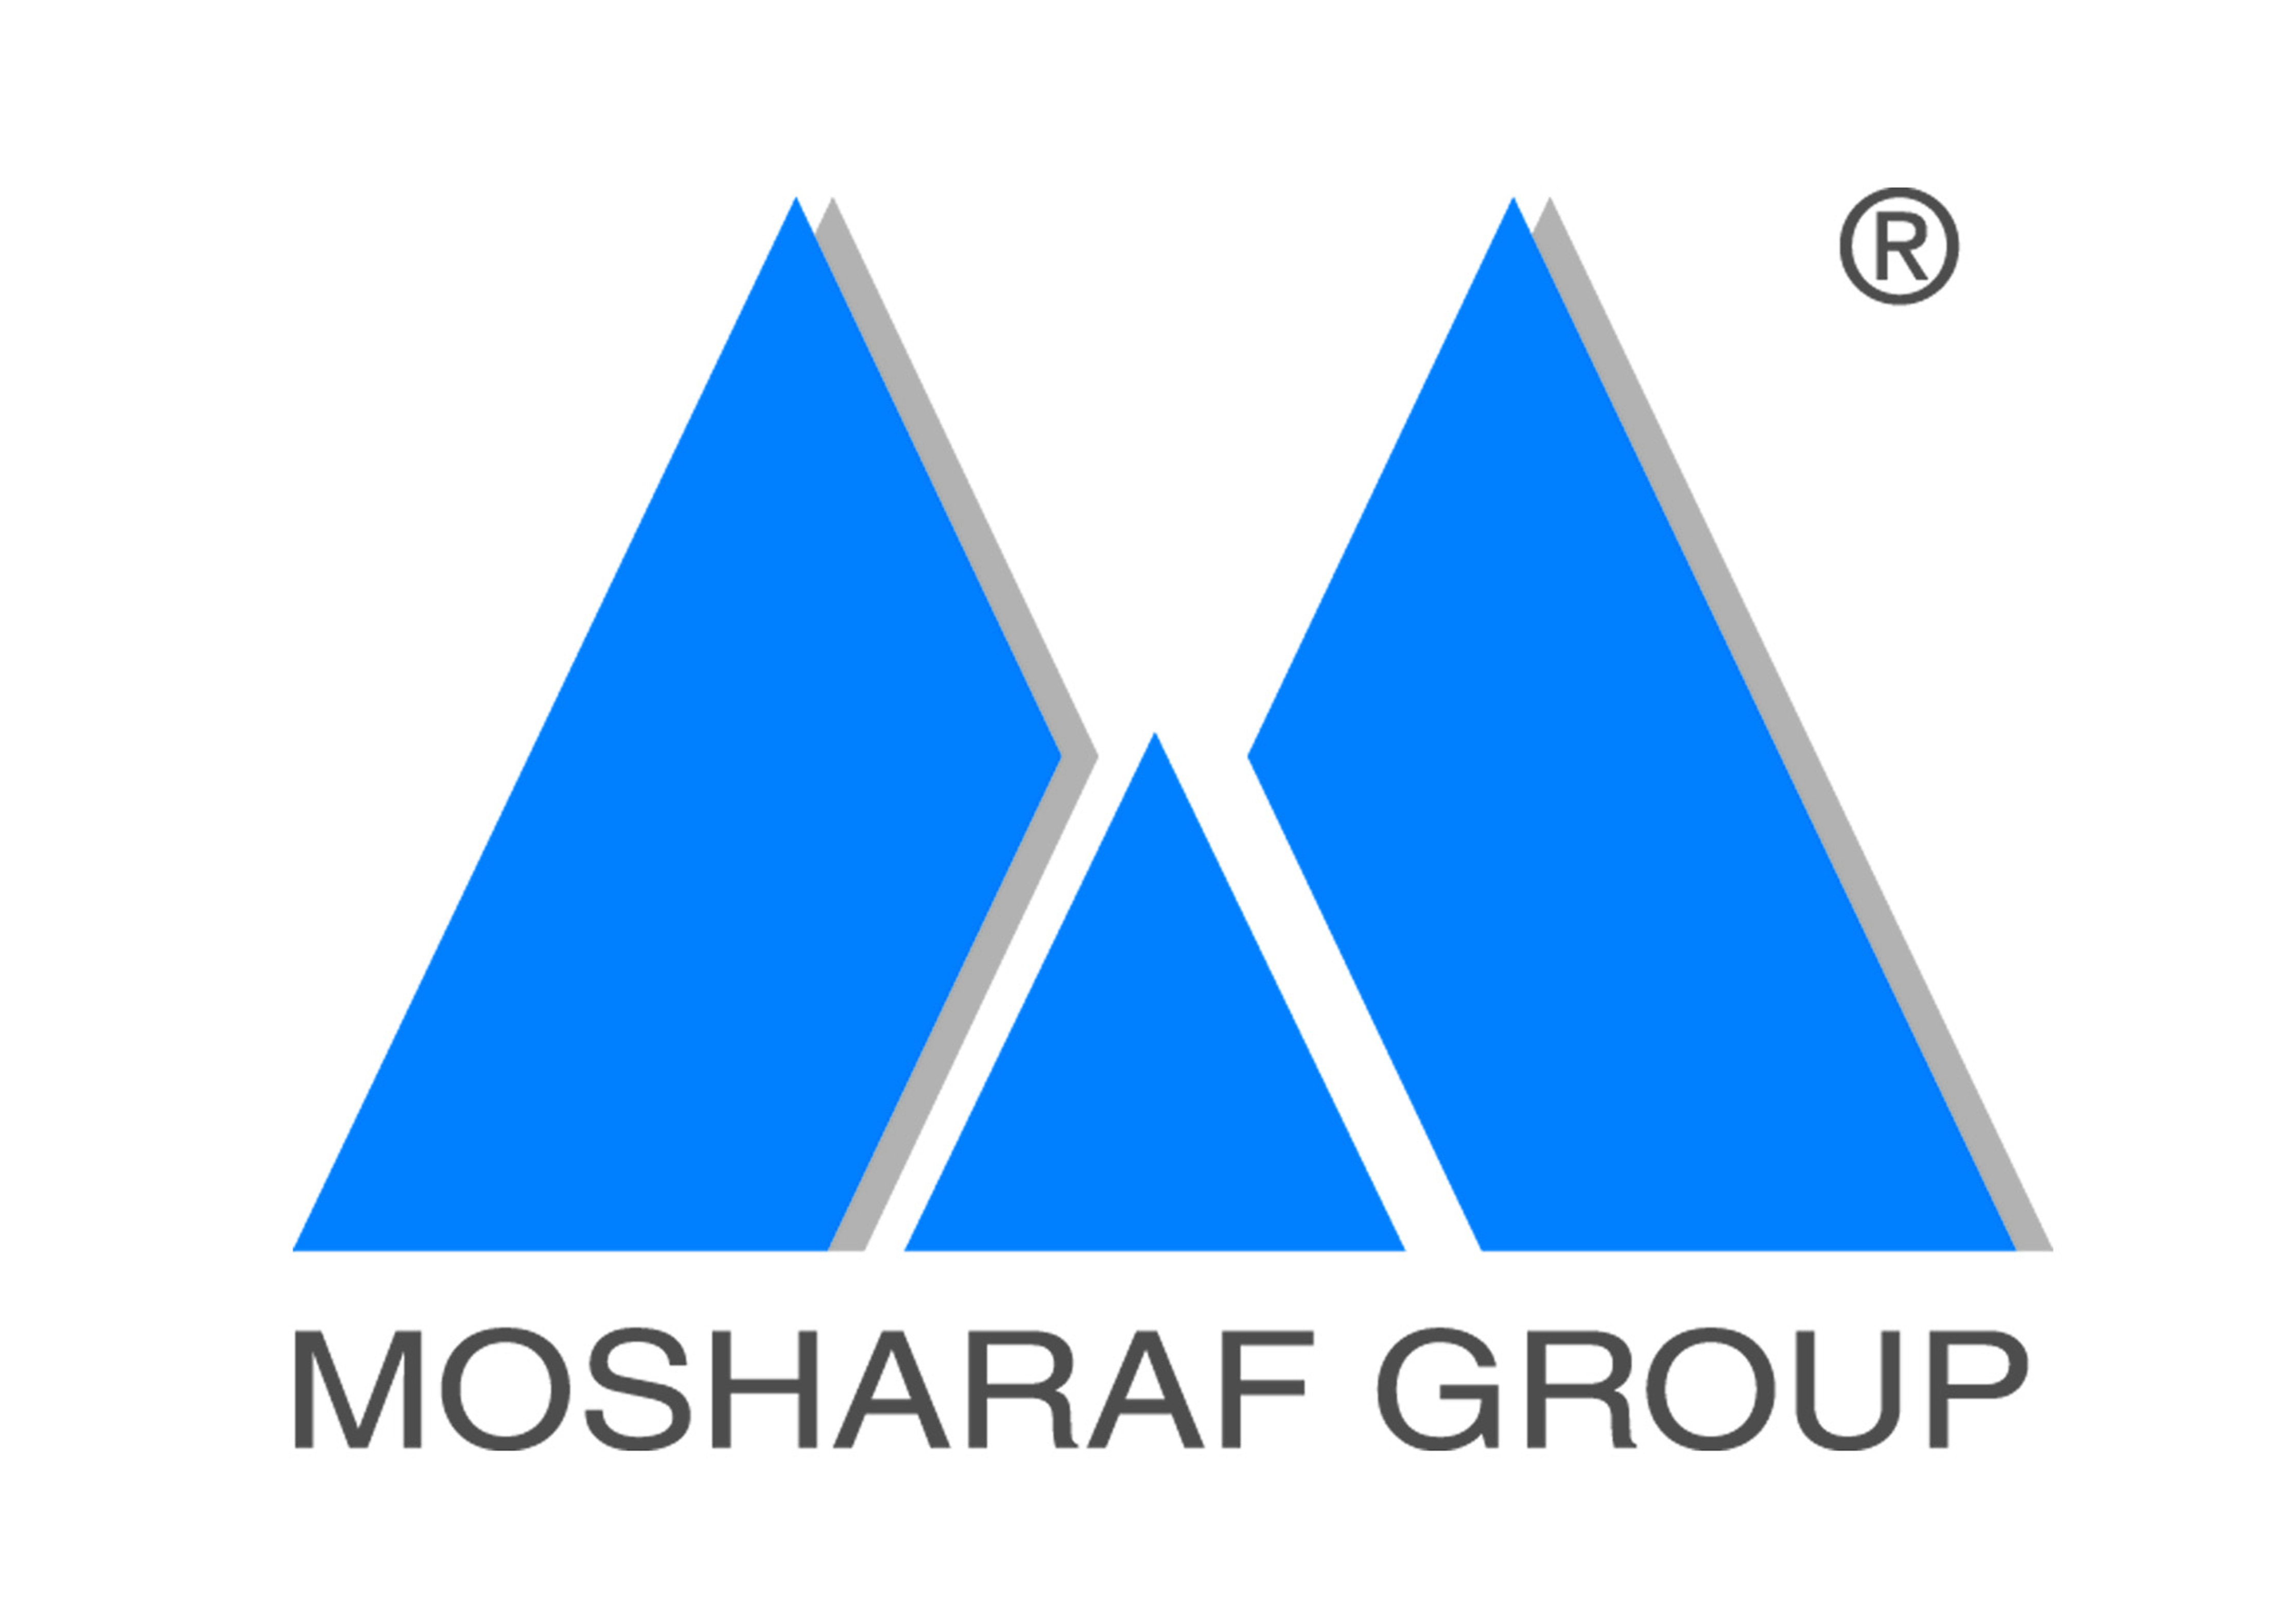 6_MOSHARAF GROUP